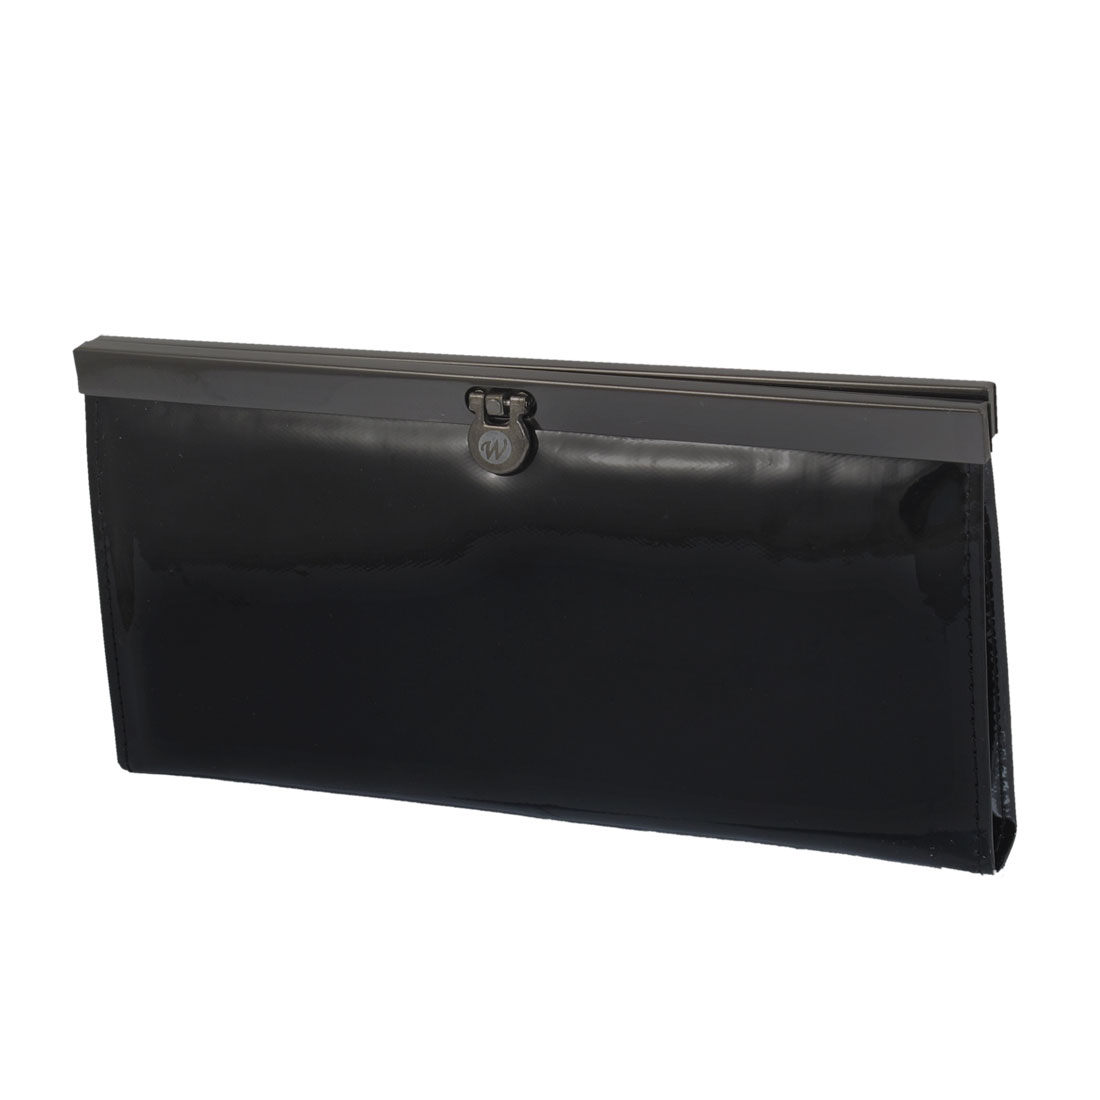 Metal Frame Trim 4 Compartment Clutch Wallet Purse Black for Women